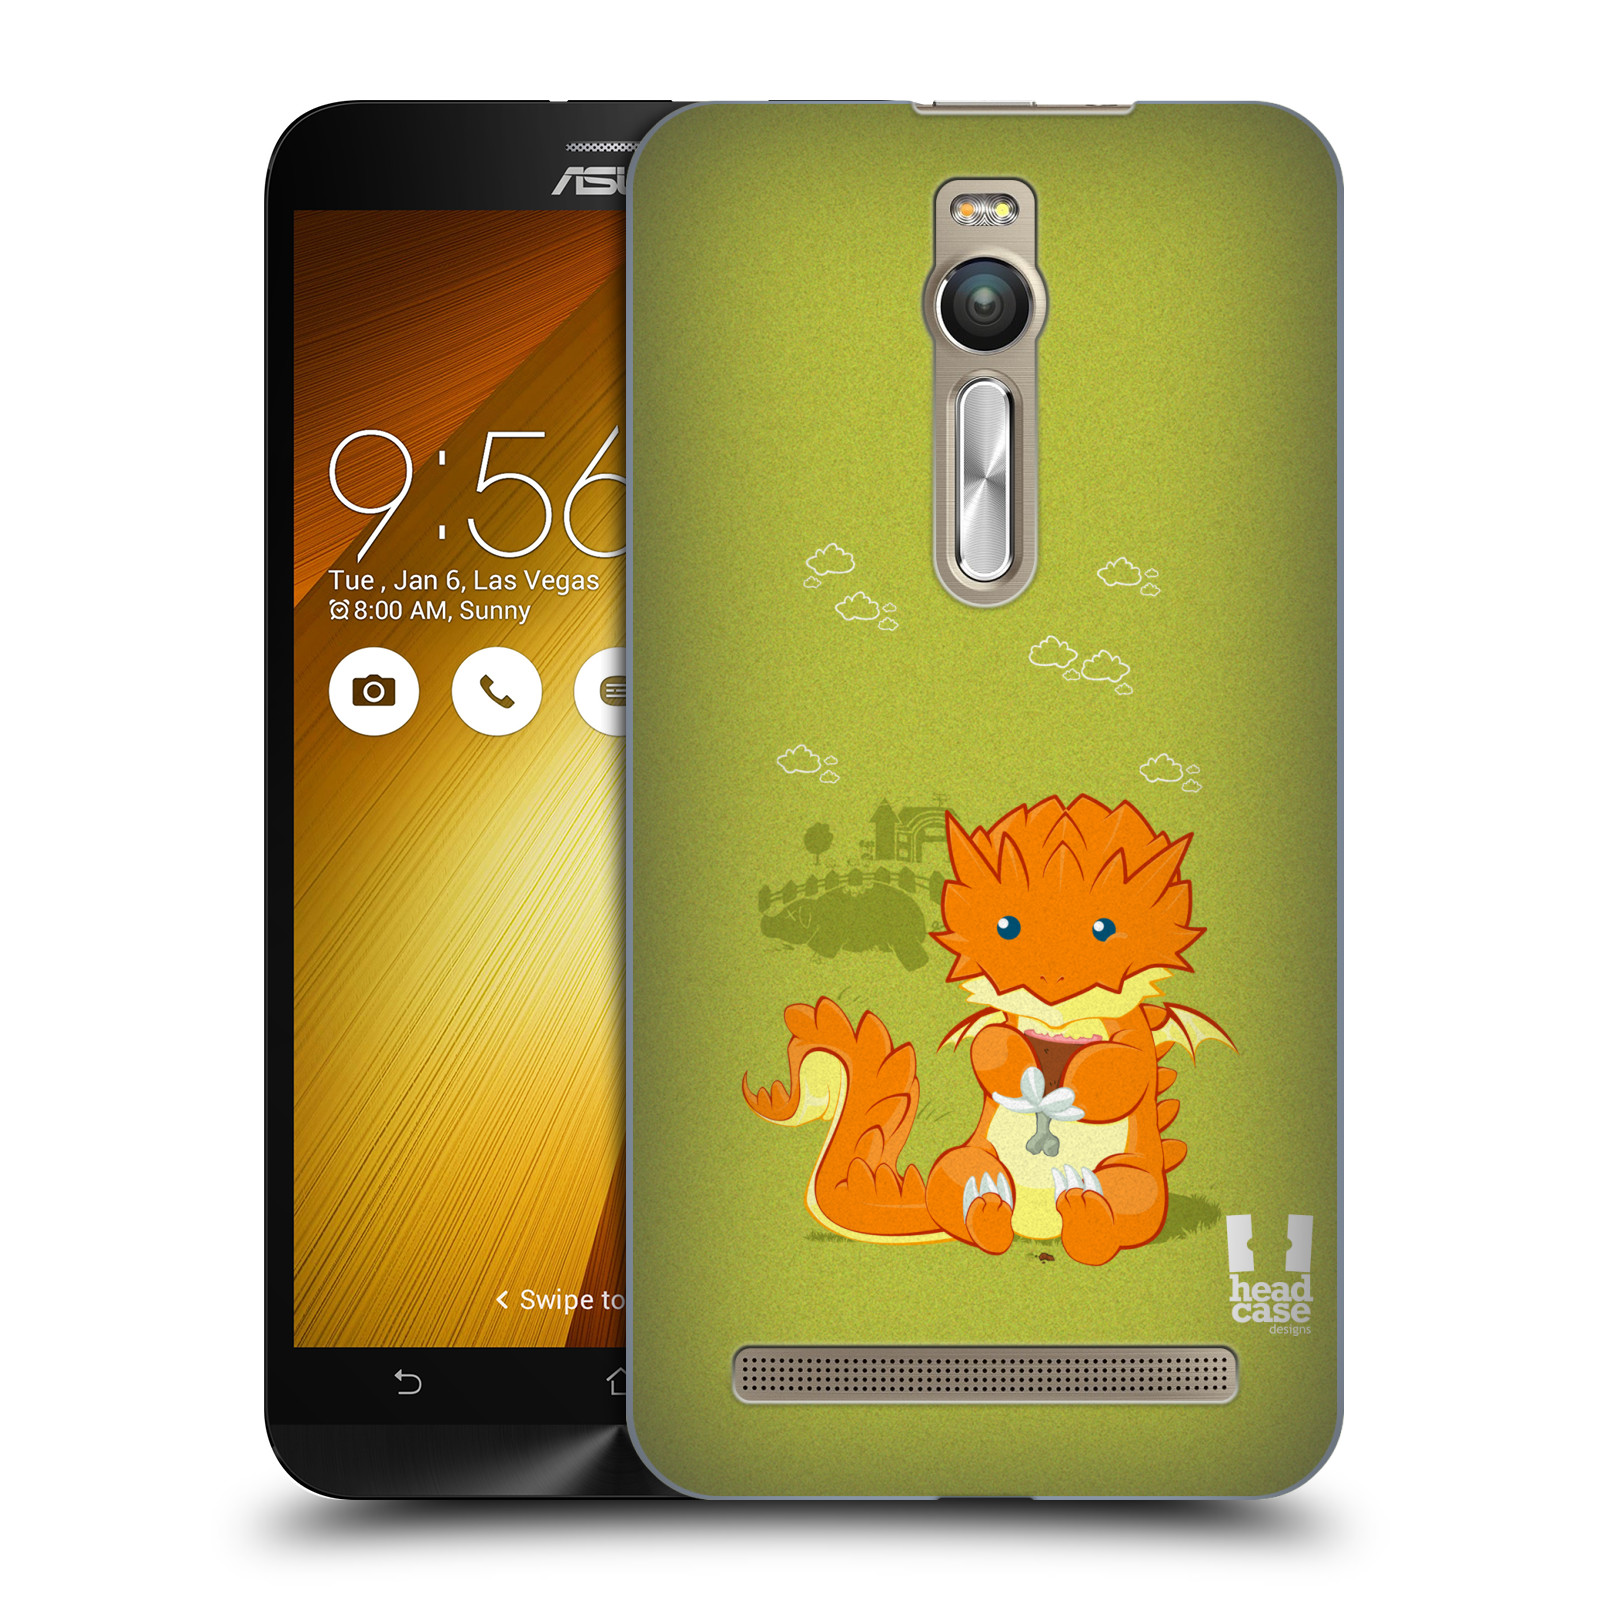 HEAD CASE DESIGNS LITTLE DRAGONS HARD BACK CASE FOR ONEPLUS ASUS AMAZON